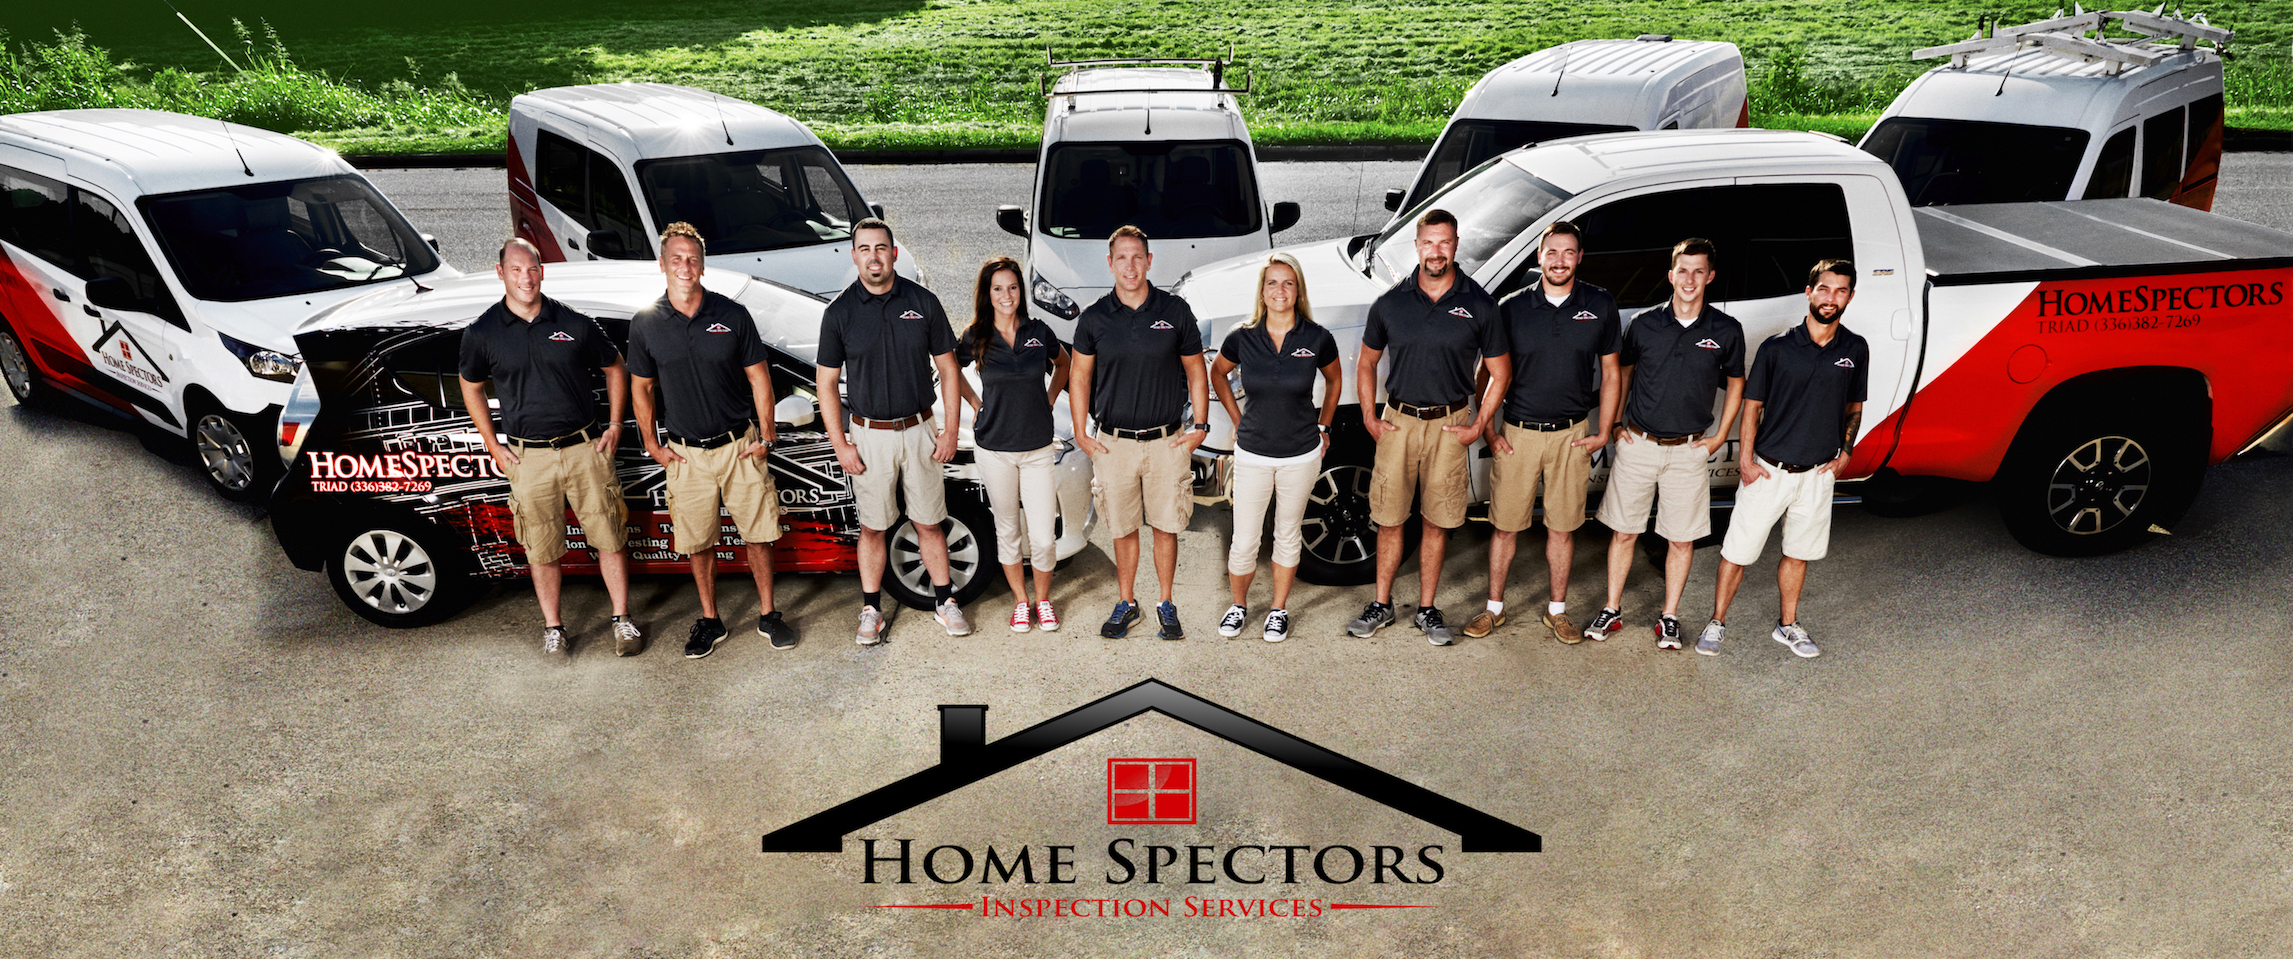 Home inspection in Greensboro, Raleigh, and surrounding areas